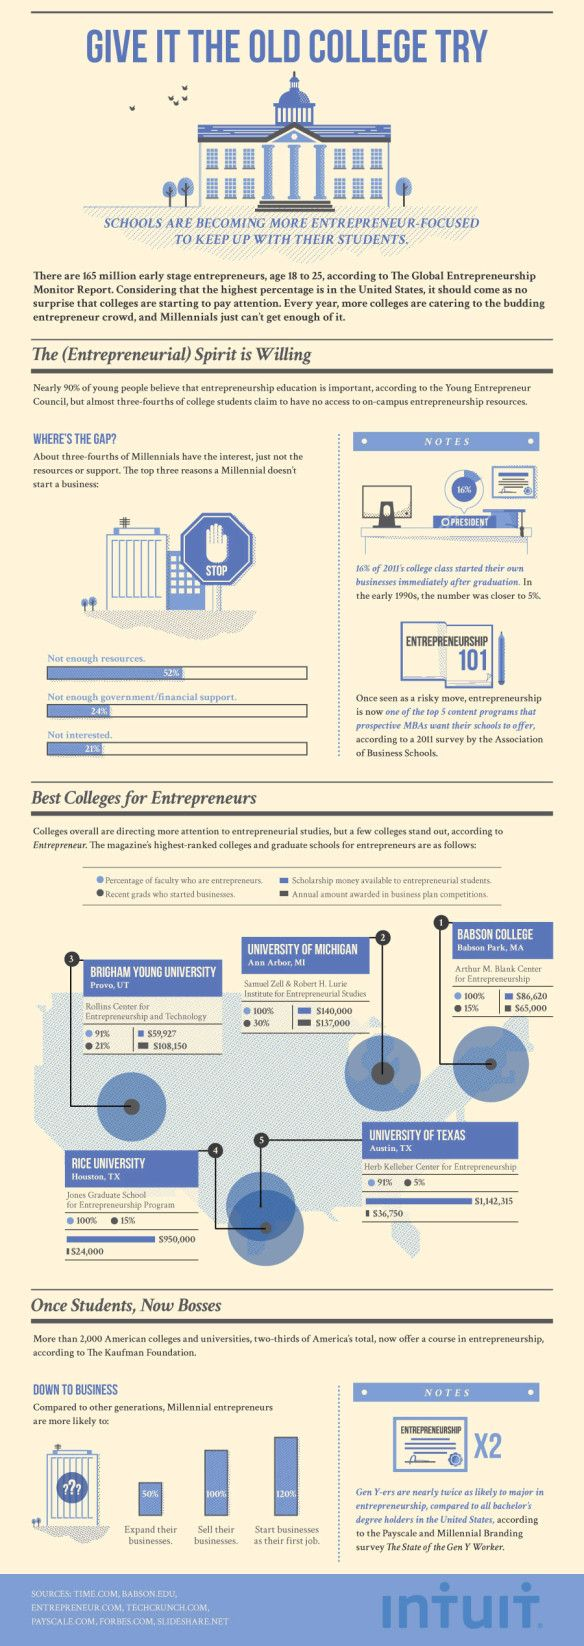 college-try-infographic